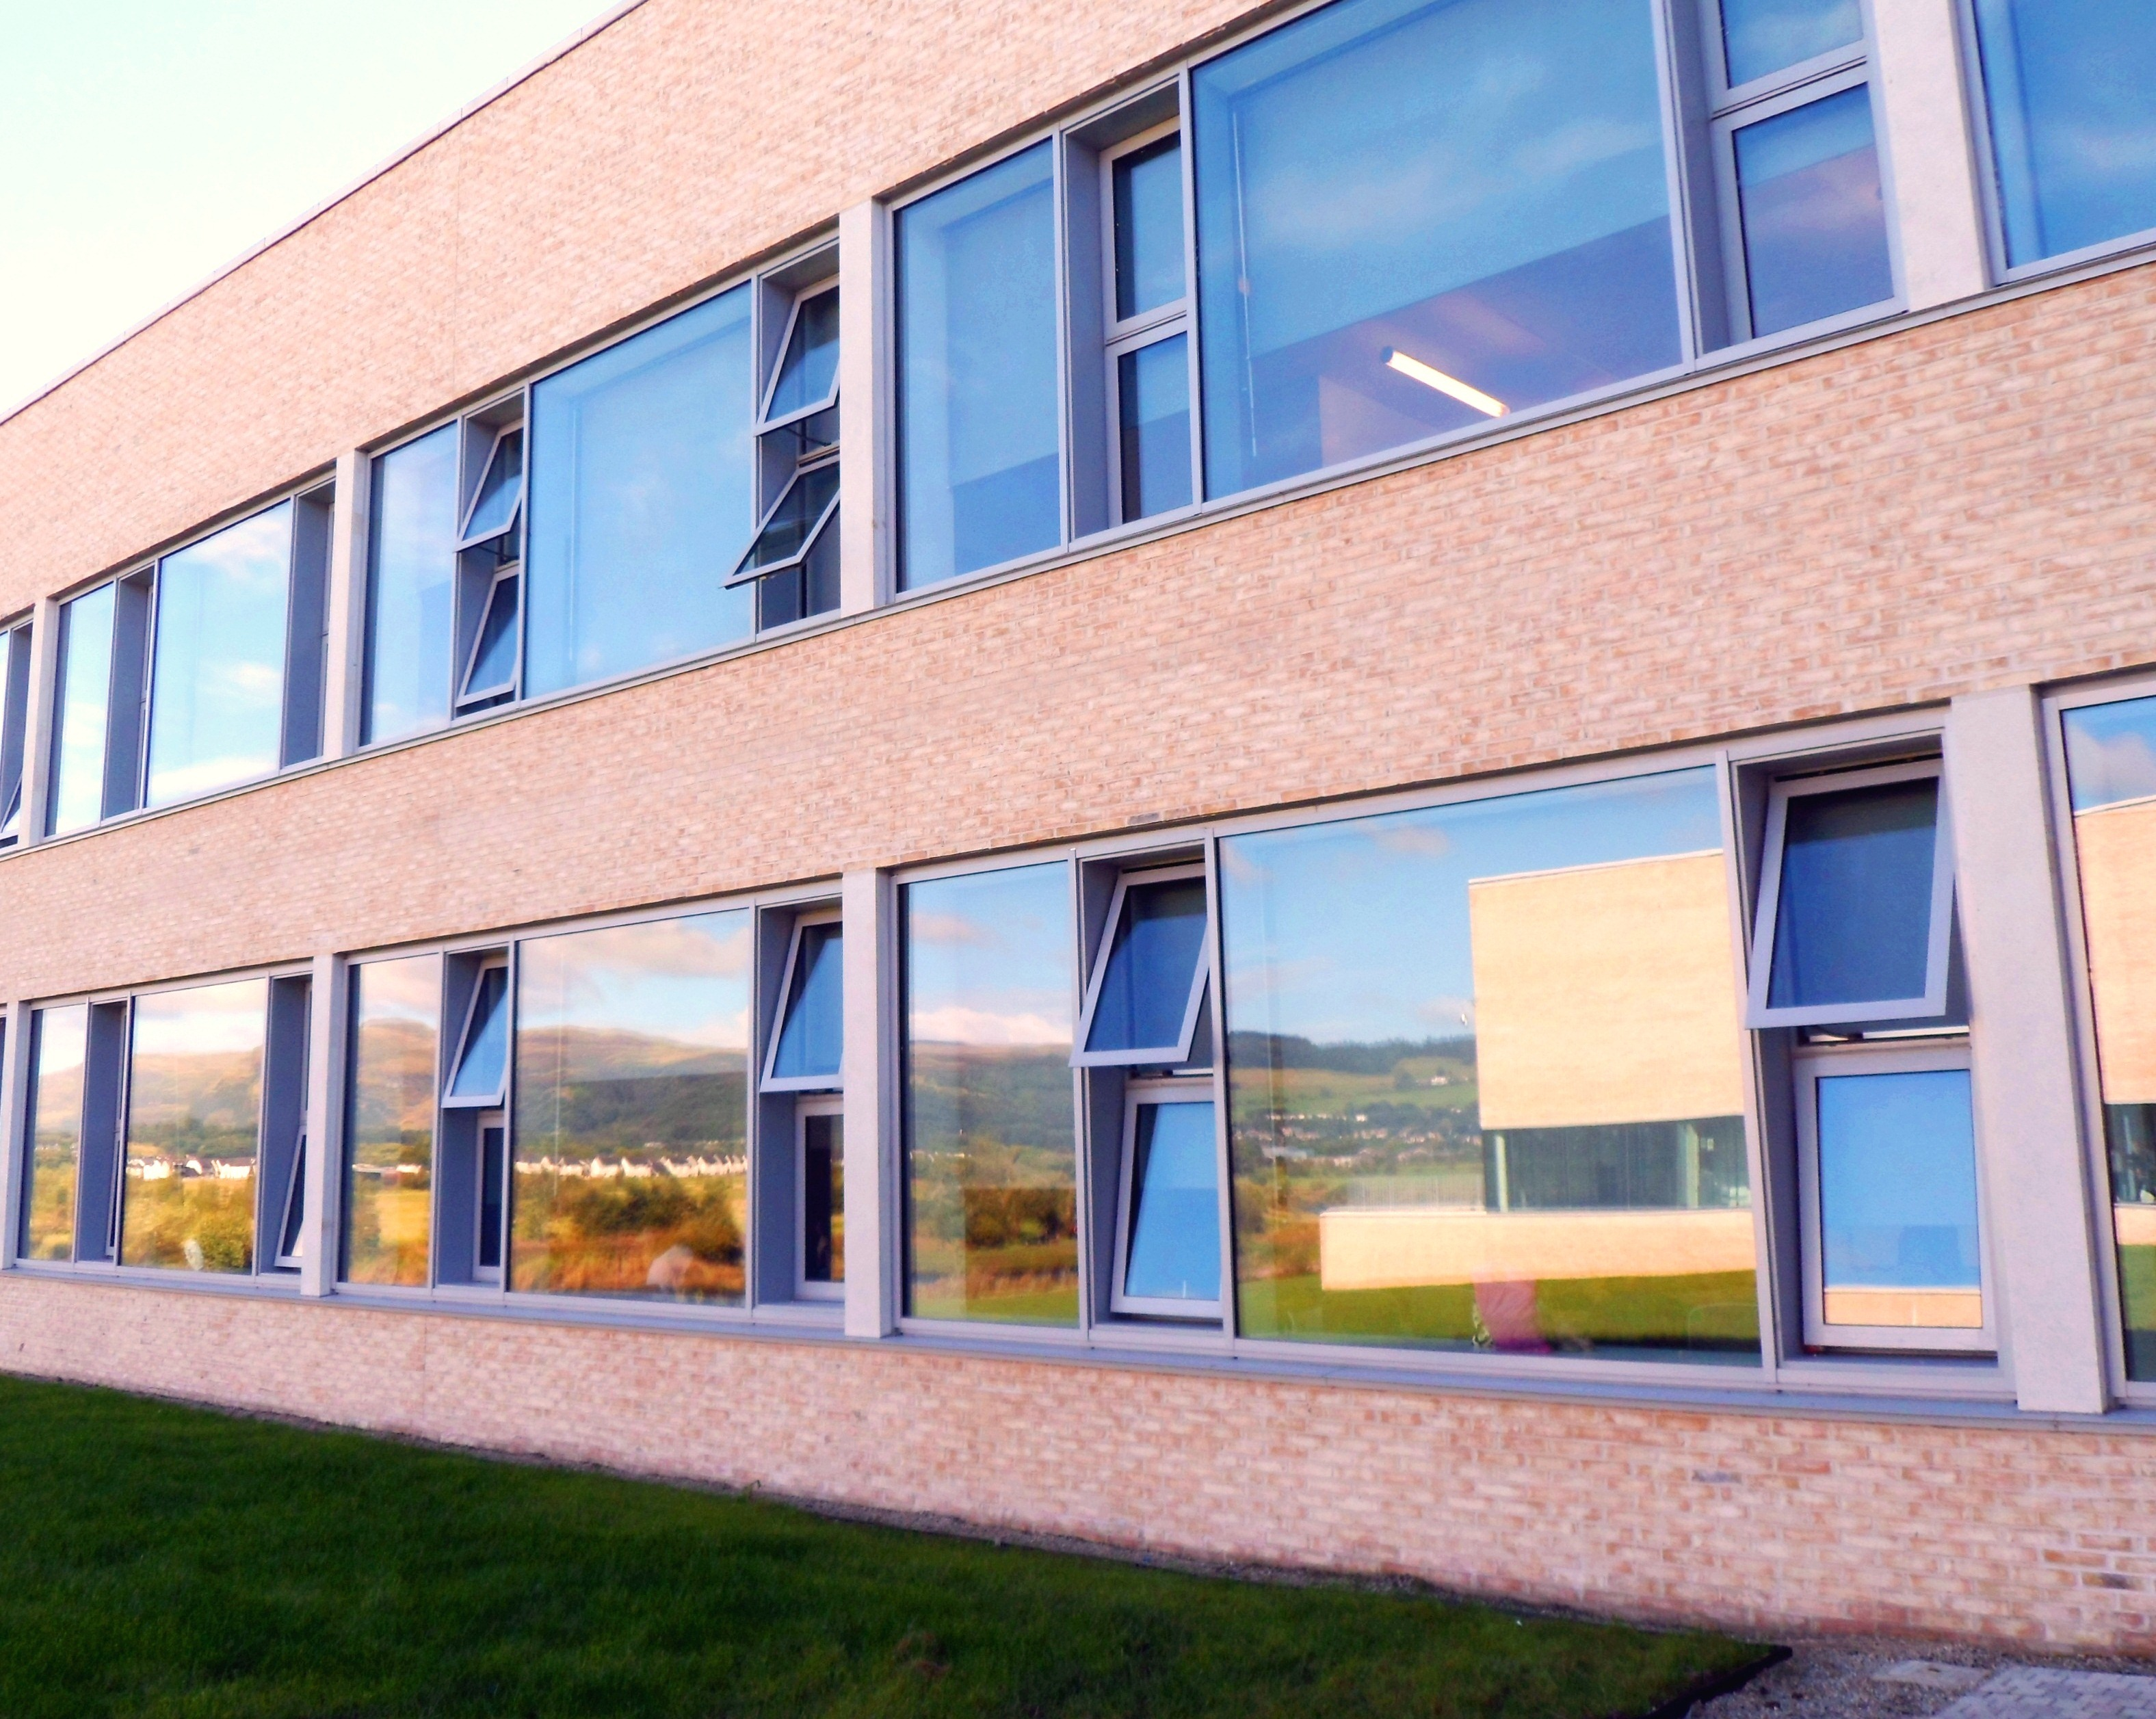 Forth Valley College – Stirling Campus